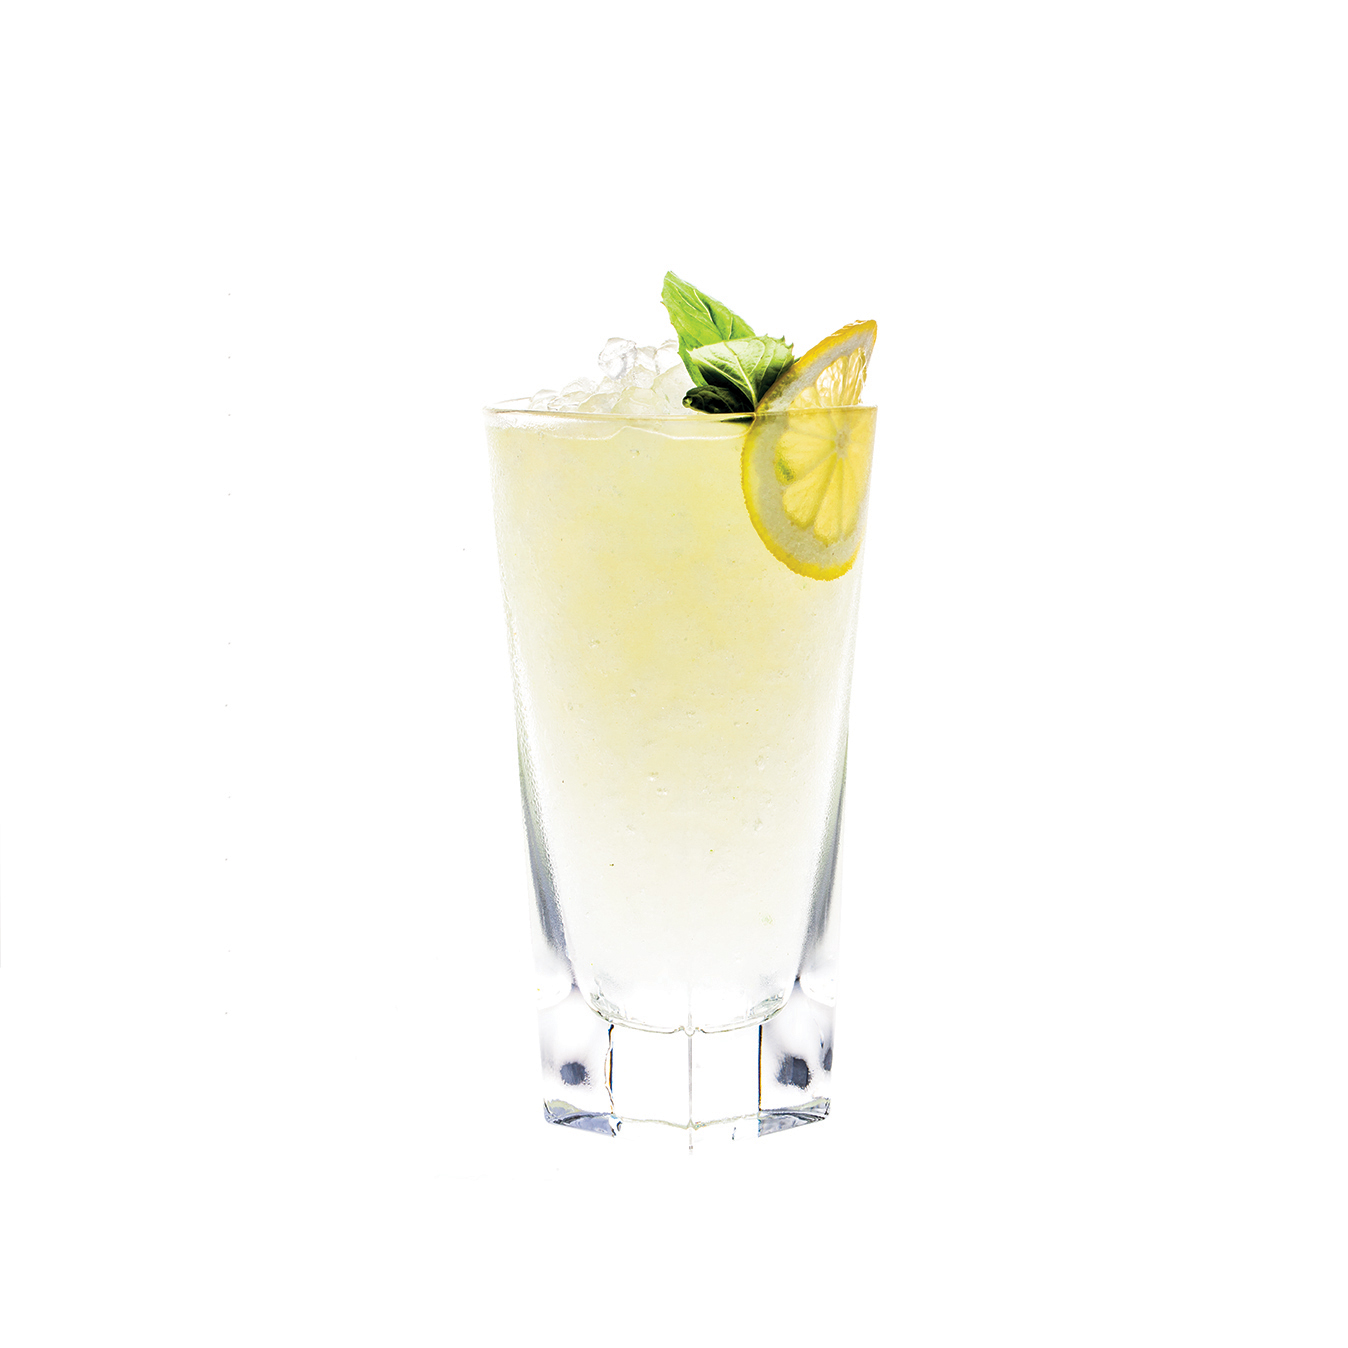 KLEO-PATRA - 2 parts KLEOS Mastiha Spirit1⁄2 part fresh lemon juice1⁄4 part simple syrup4 basil leavesShake all ingredients vigorously.Strain over fresh crushed ice in a highball.Garnish with a lemon wheel and basil leaf.                                     Adopted from the modern classic cocktail